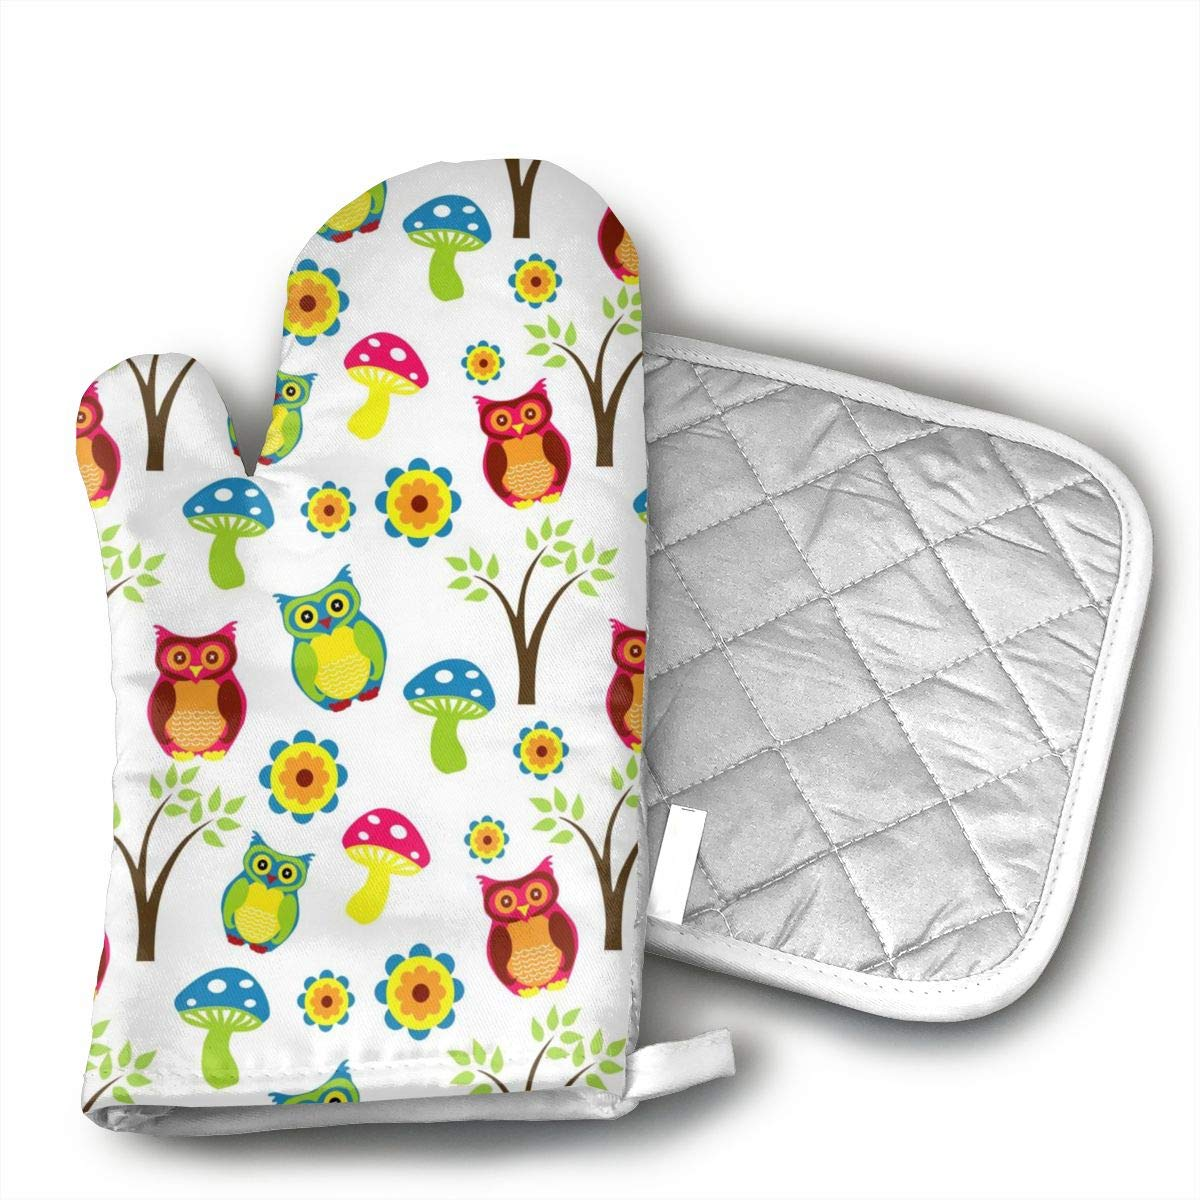 Wiqo9 Cute Owl Oven Mitts and Pot Holders Kitchen Mitten Cooking Gloves,Cooking, Baking, BBQ.